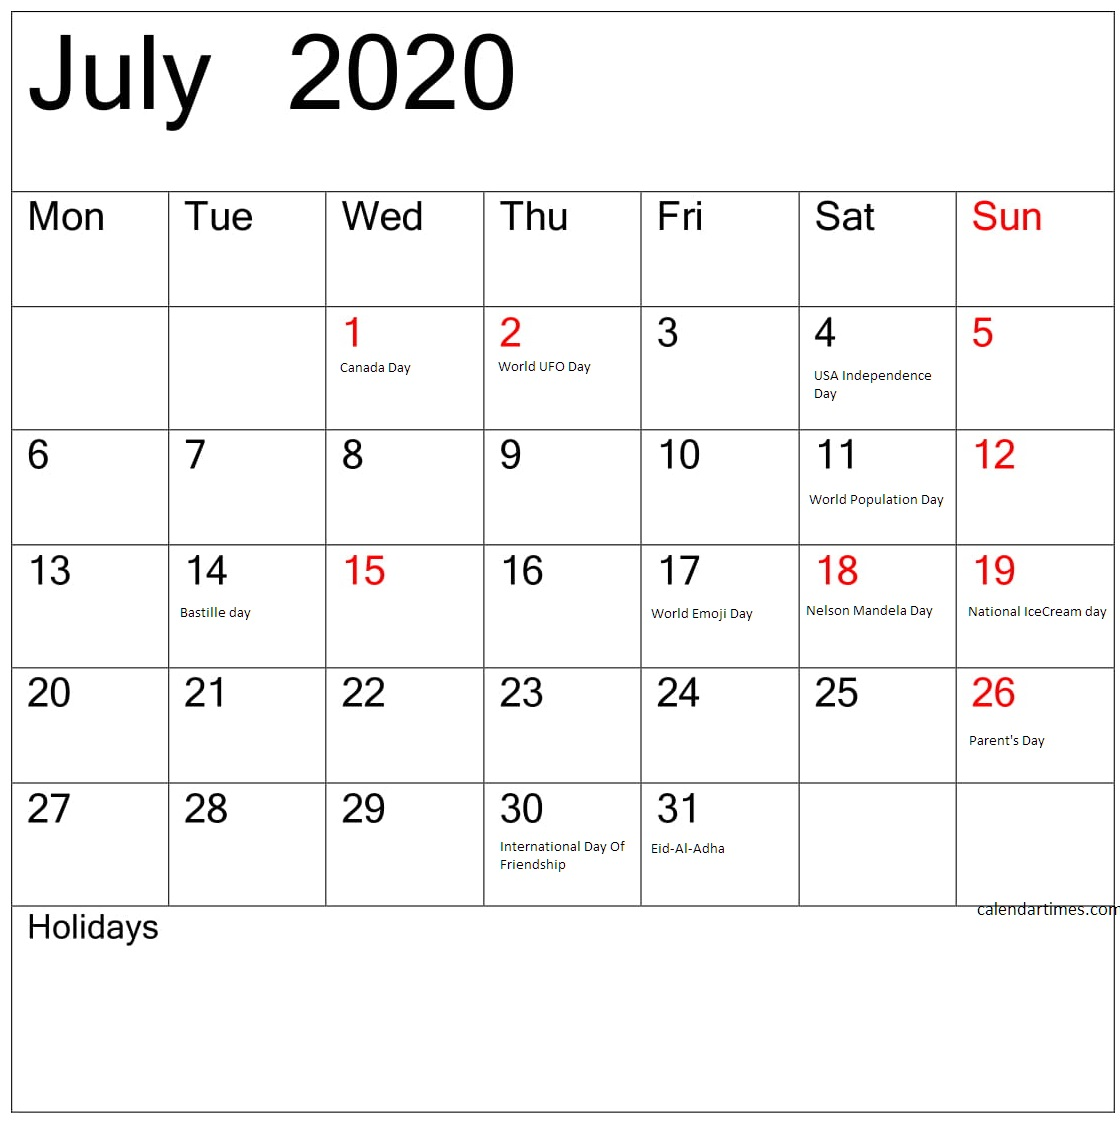 July 2020 Calendar With Holidays And Events